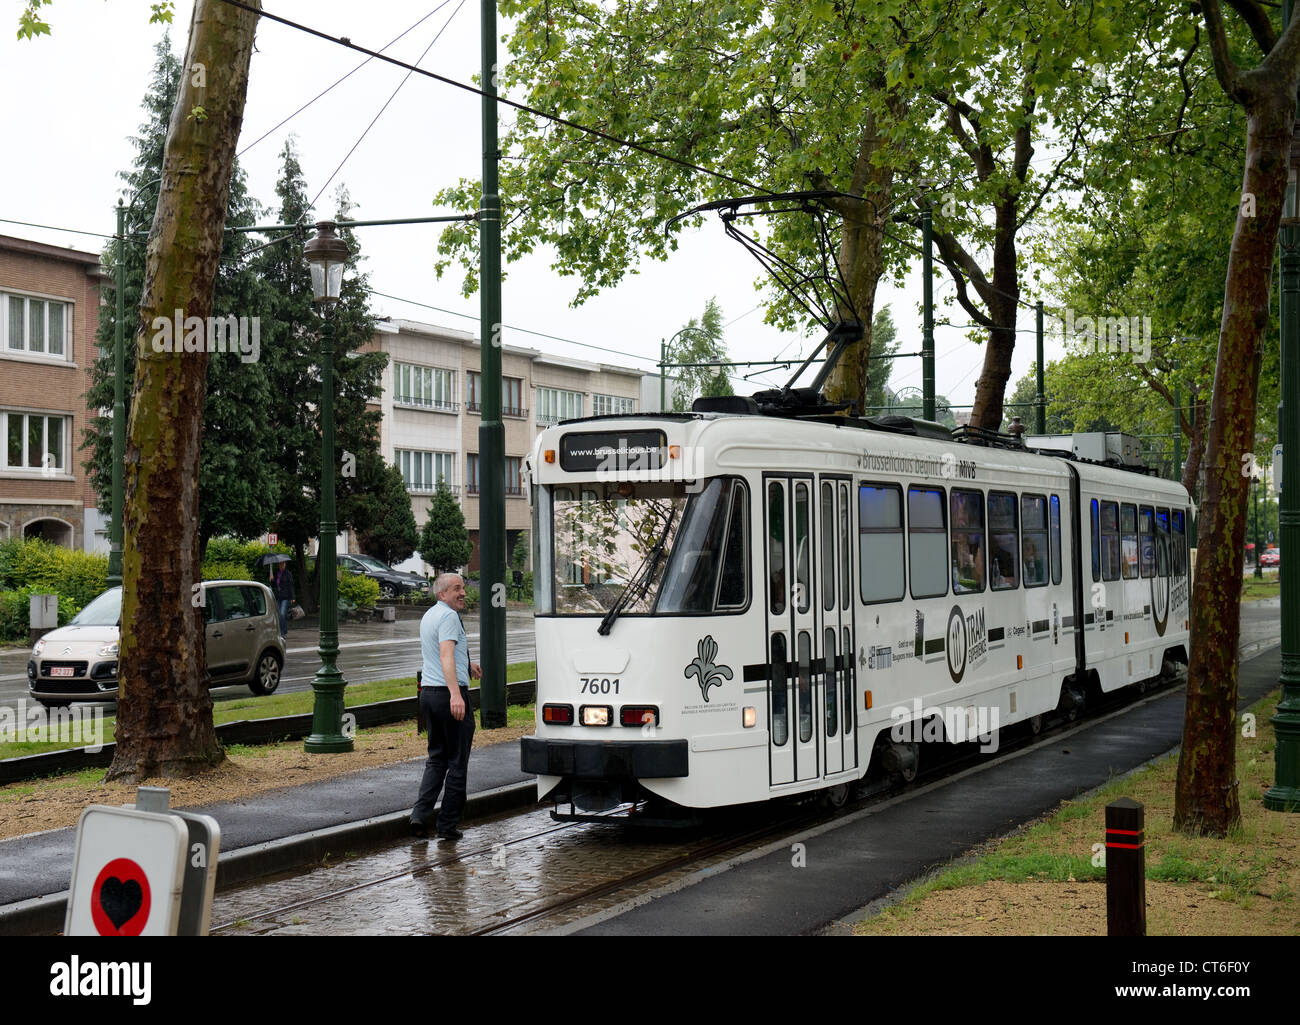 Brusselicious Luncheon Tram No. 7601 -1 - Stock Image